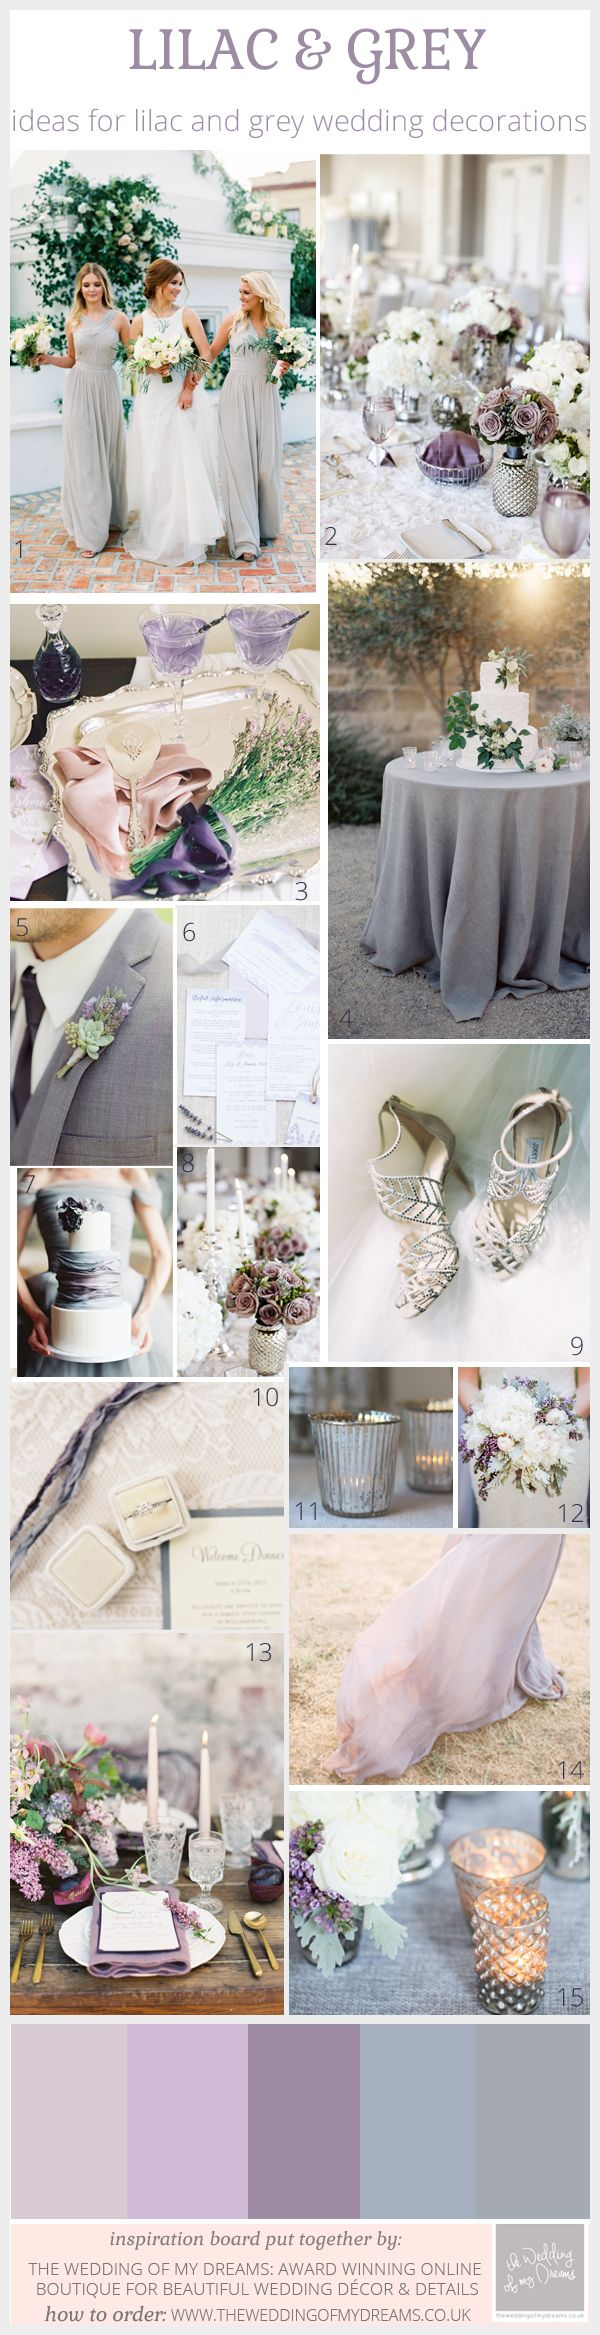 Chic Lilac And Grey Wedding Theme Inspiration